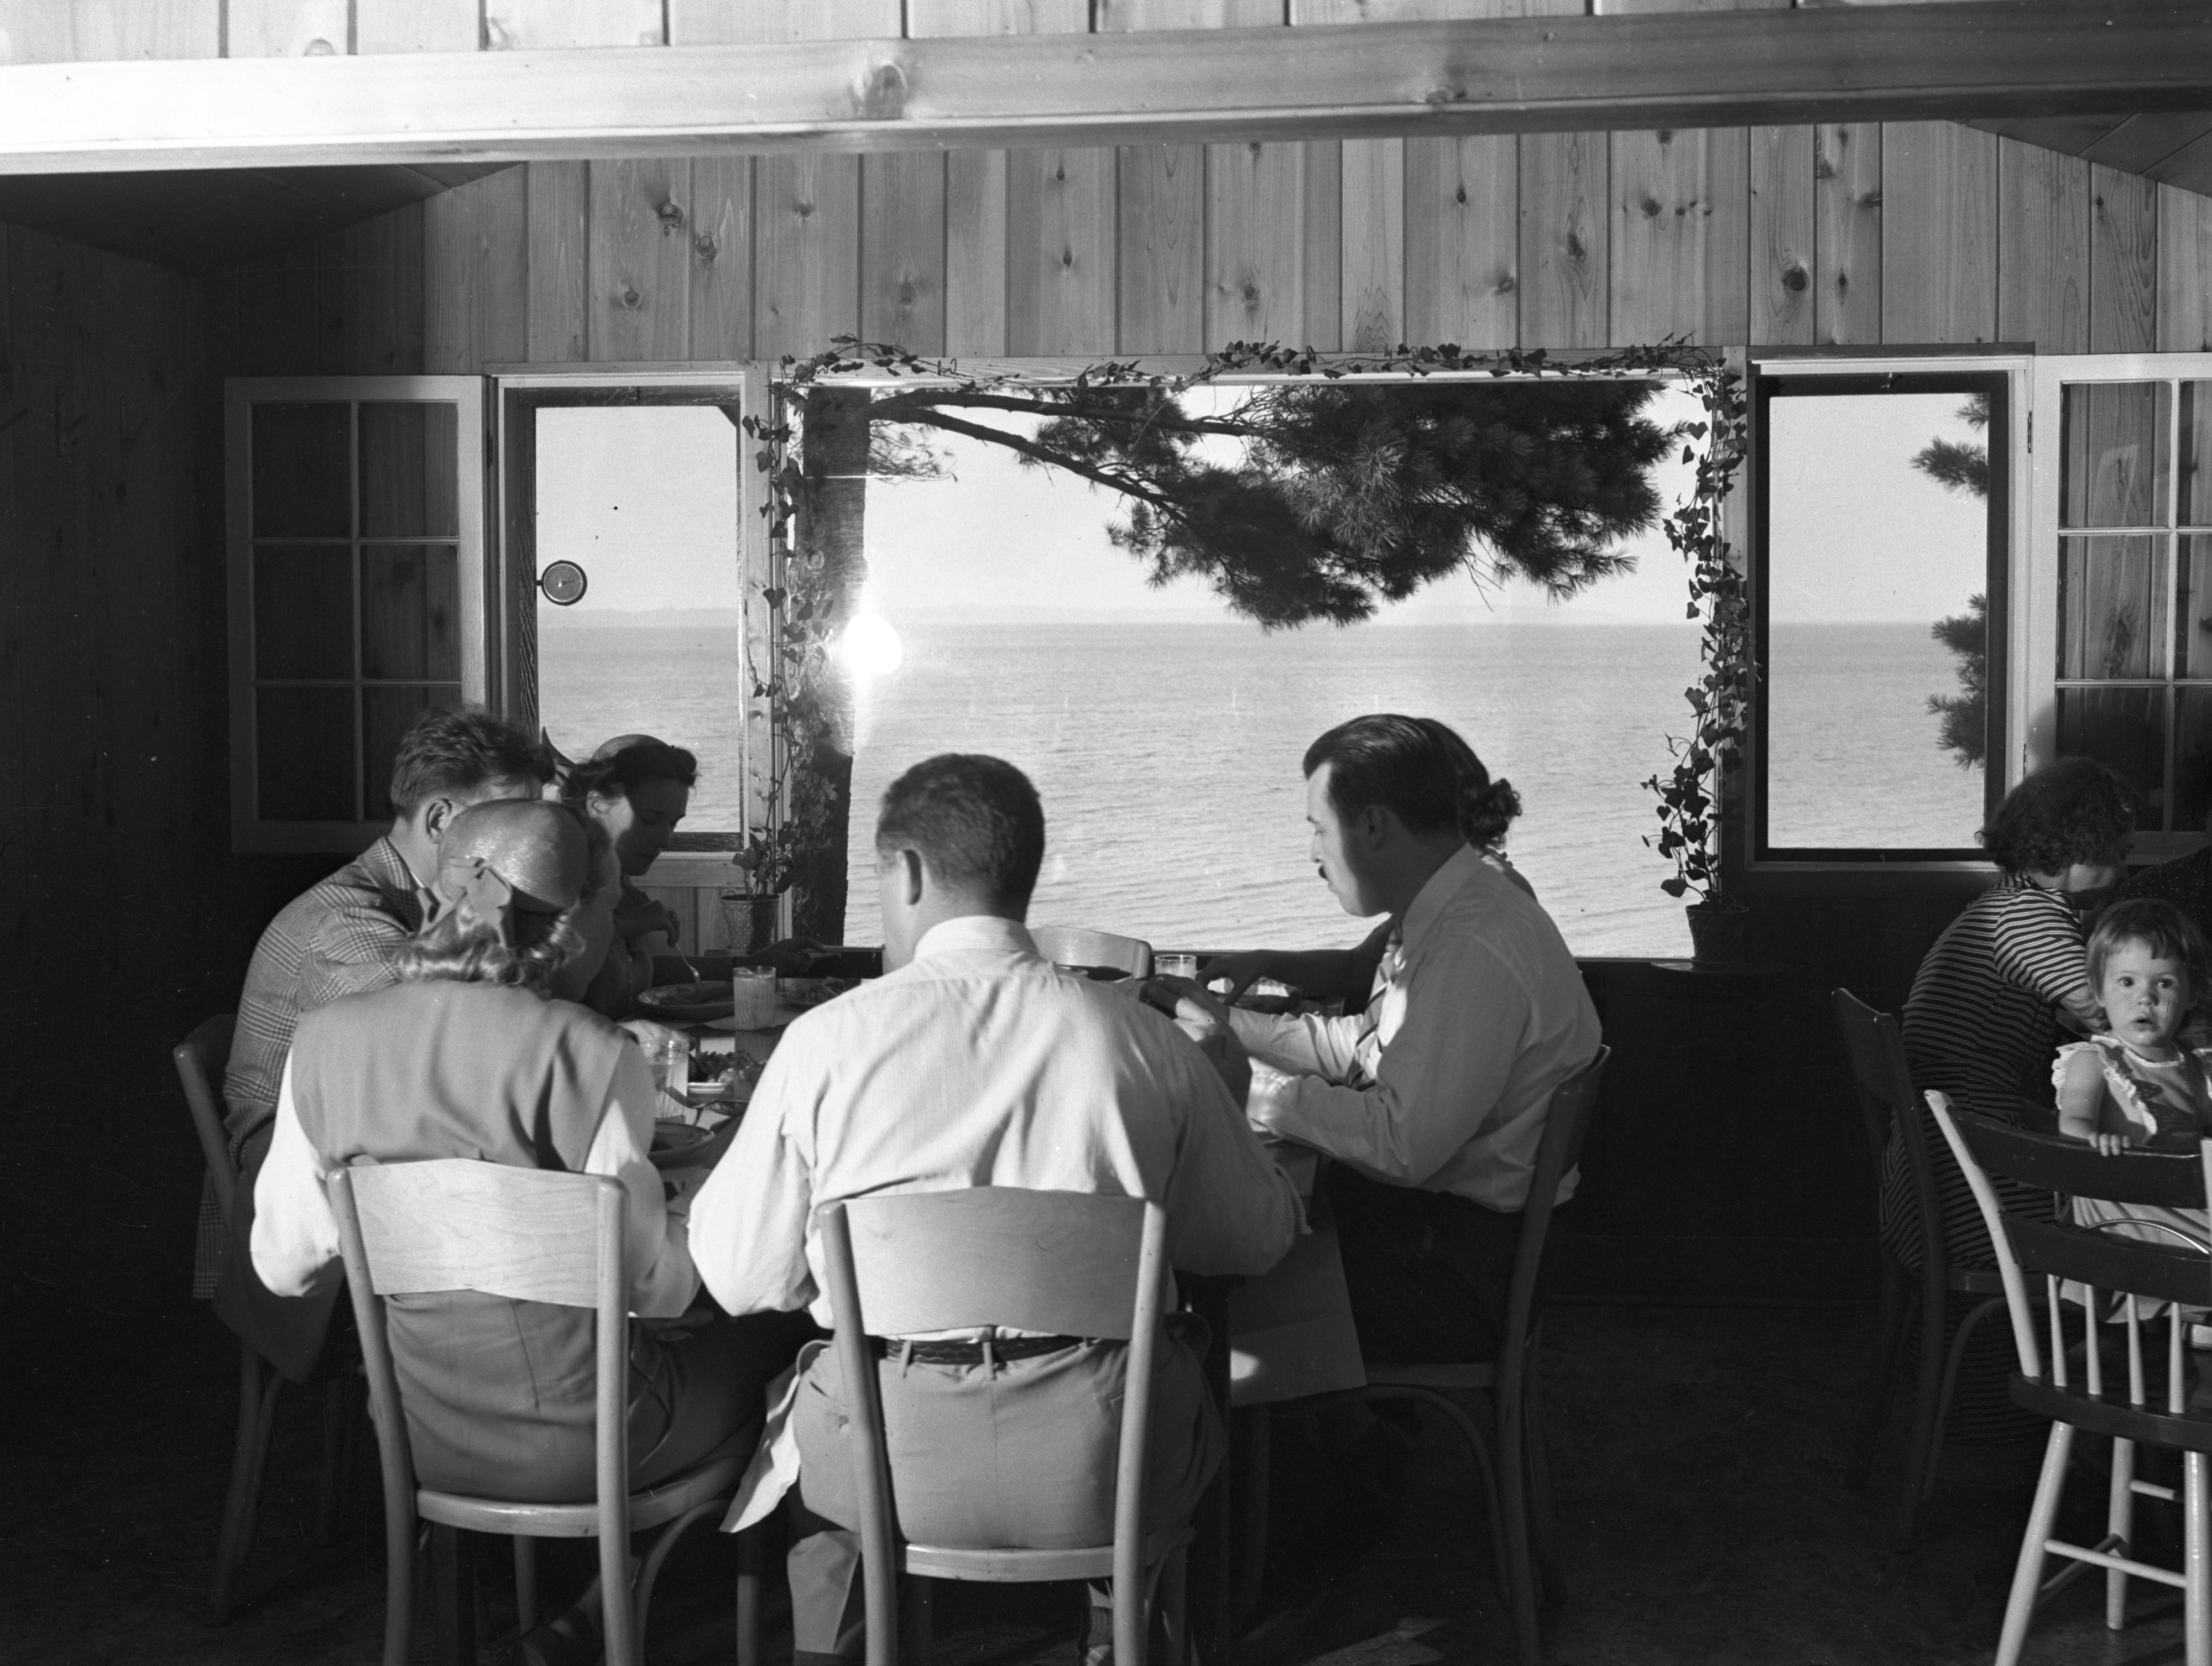 View Of Lake Michigan From Inside Joe Nelson's Restaurant In Traverse City, 1944 image